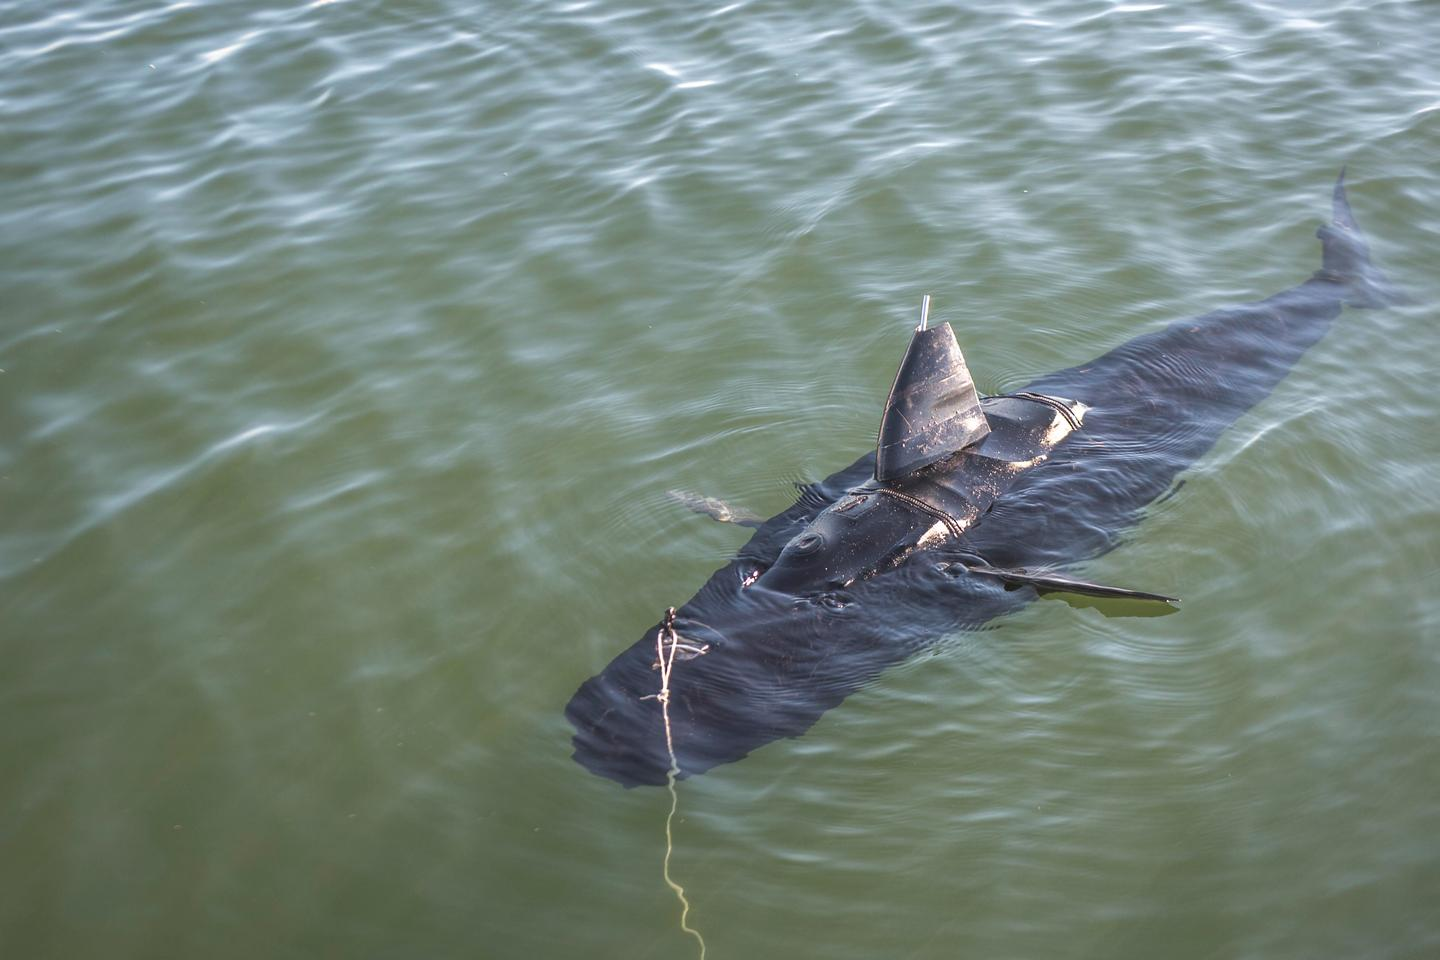 The GhostSwimmer cruises the waters of Virginia Beach